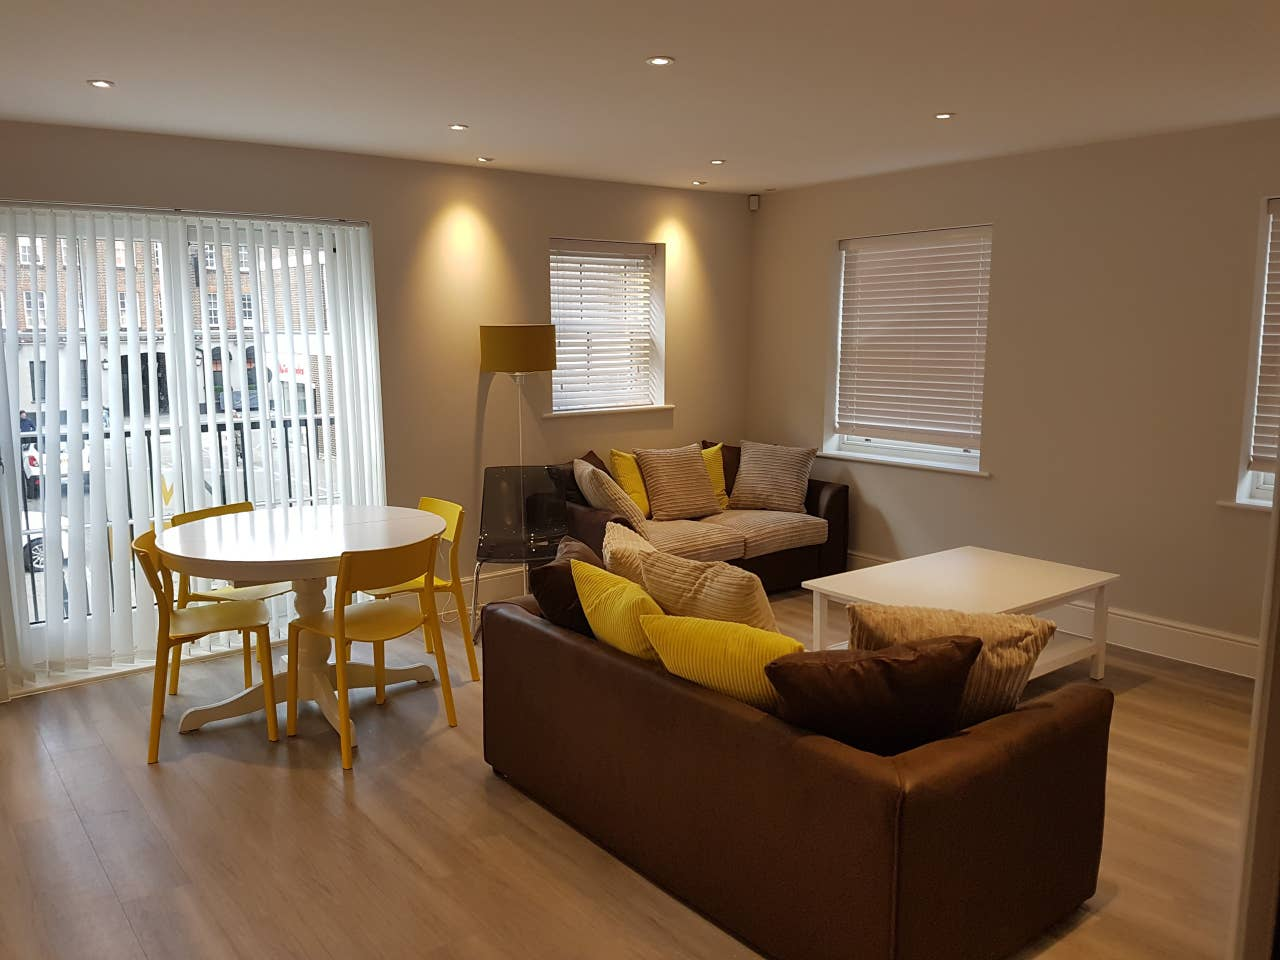 Book-Brentwood-Serviced-Apartments-located-near-Brentwood-railway-station-at-low-cost.We-offer-a-fully-equipped-kitchen-featuring-a-dishwasher,-a-microwave.